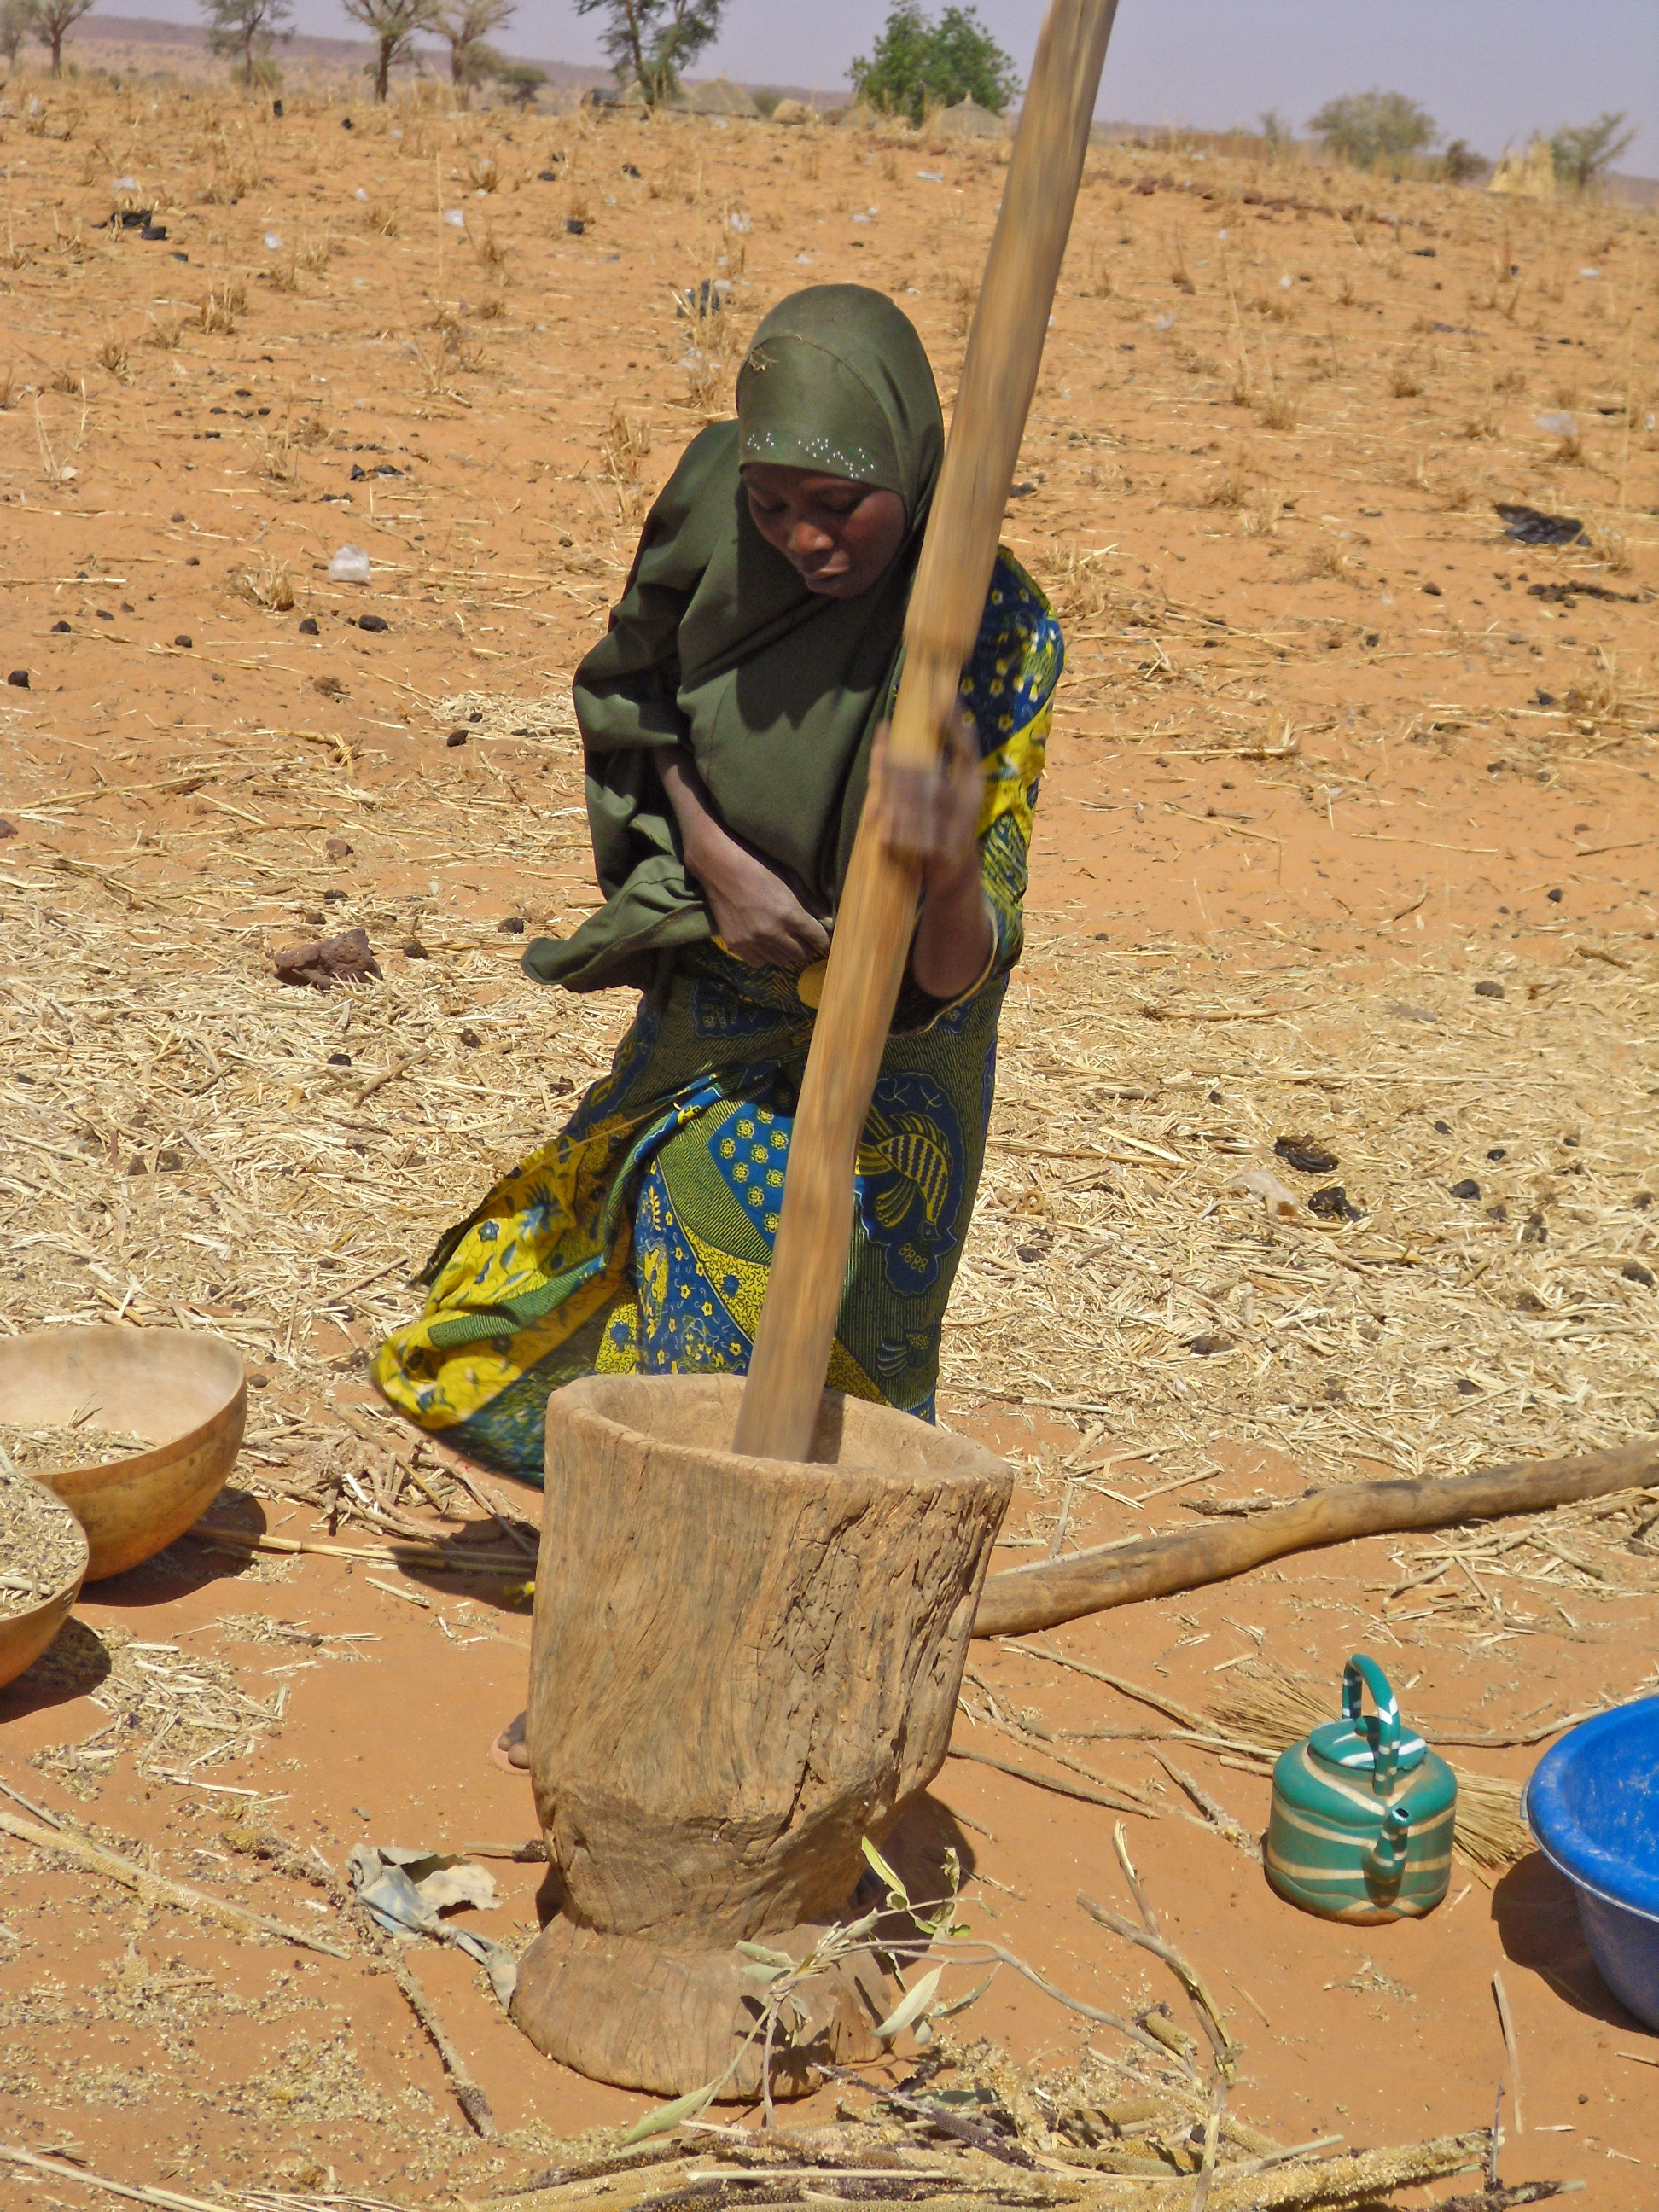 Pounding millet in the village of Boukanda, 50km west of Niamey, capital of Niger